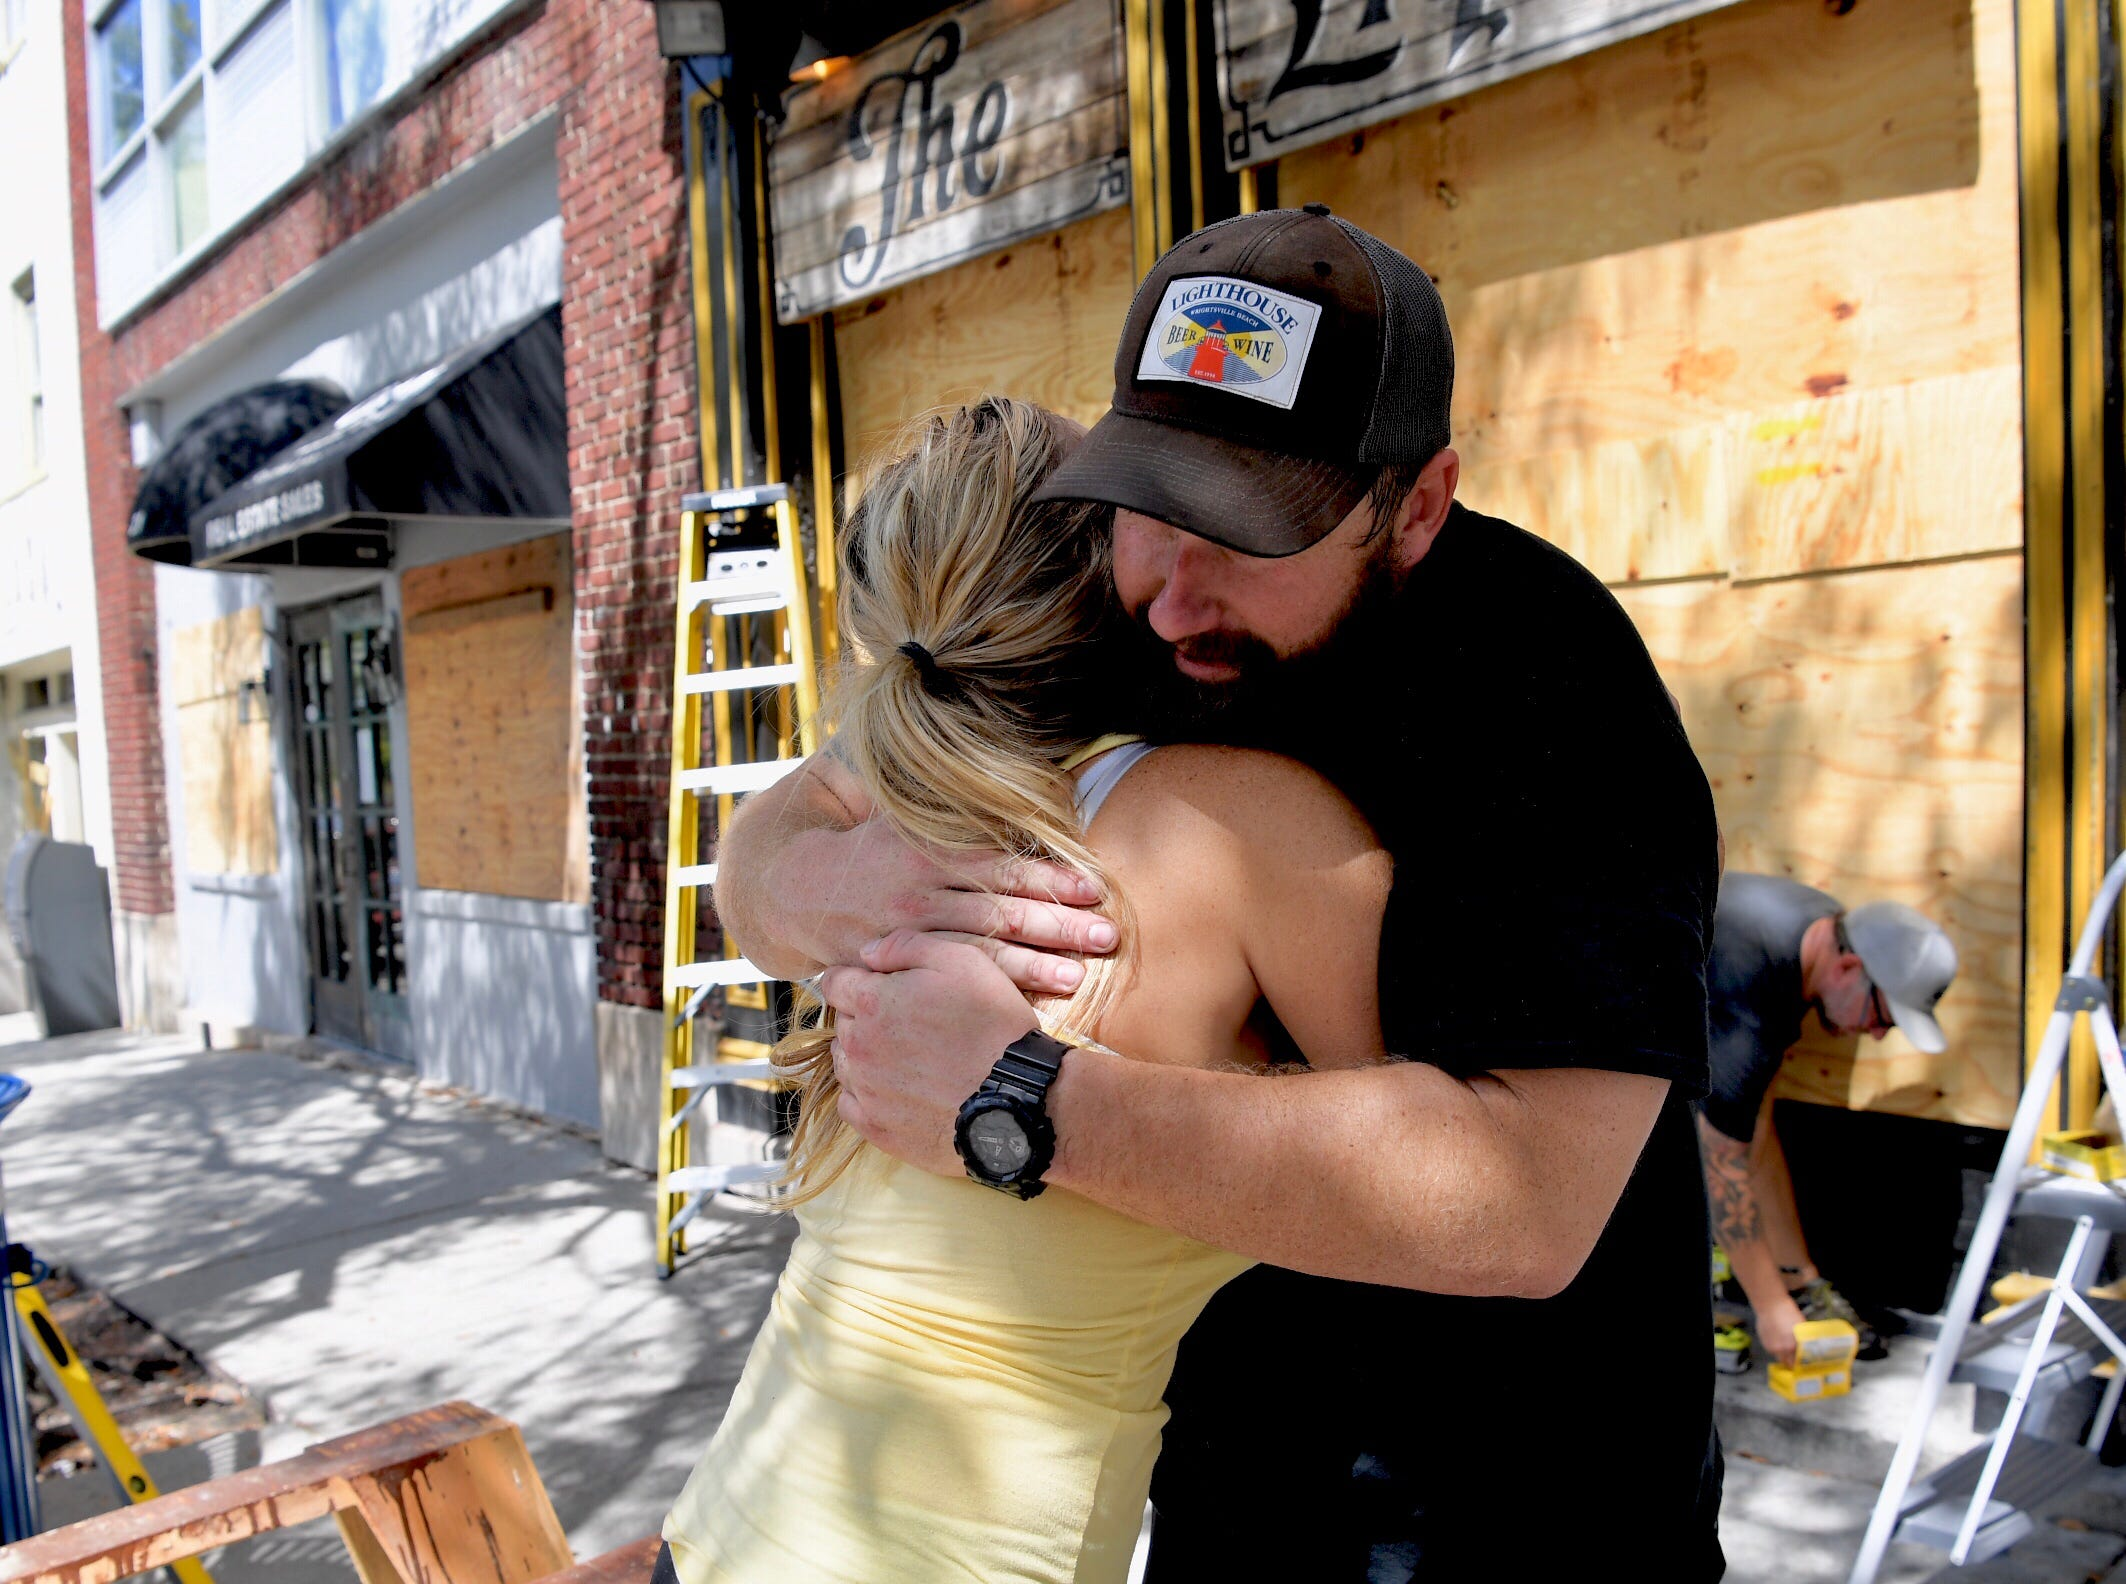 Jennifer Wilson hugs former Liquid Room employee Andy Correll as they prepare for Hurricane Florence in Wilmington, N.C., on Wednesday, Sept. 12, 2018.